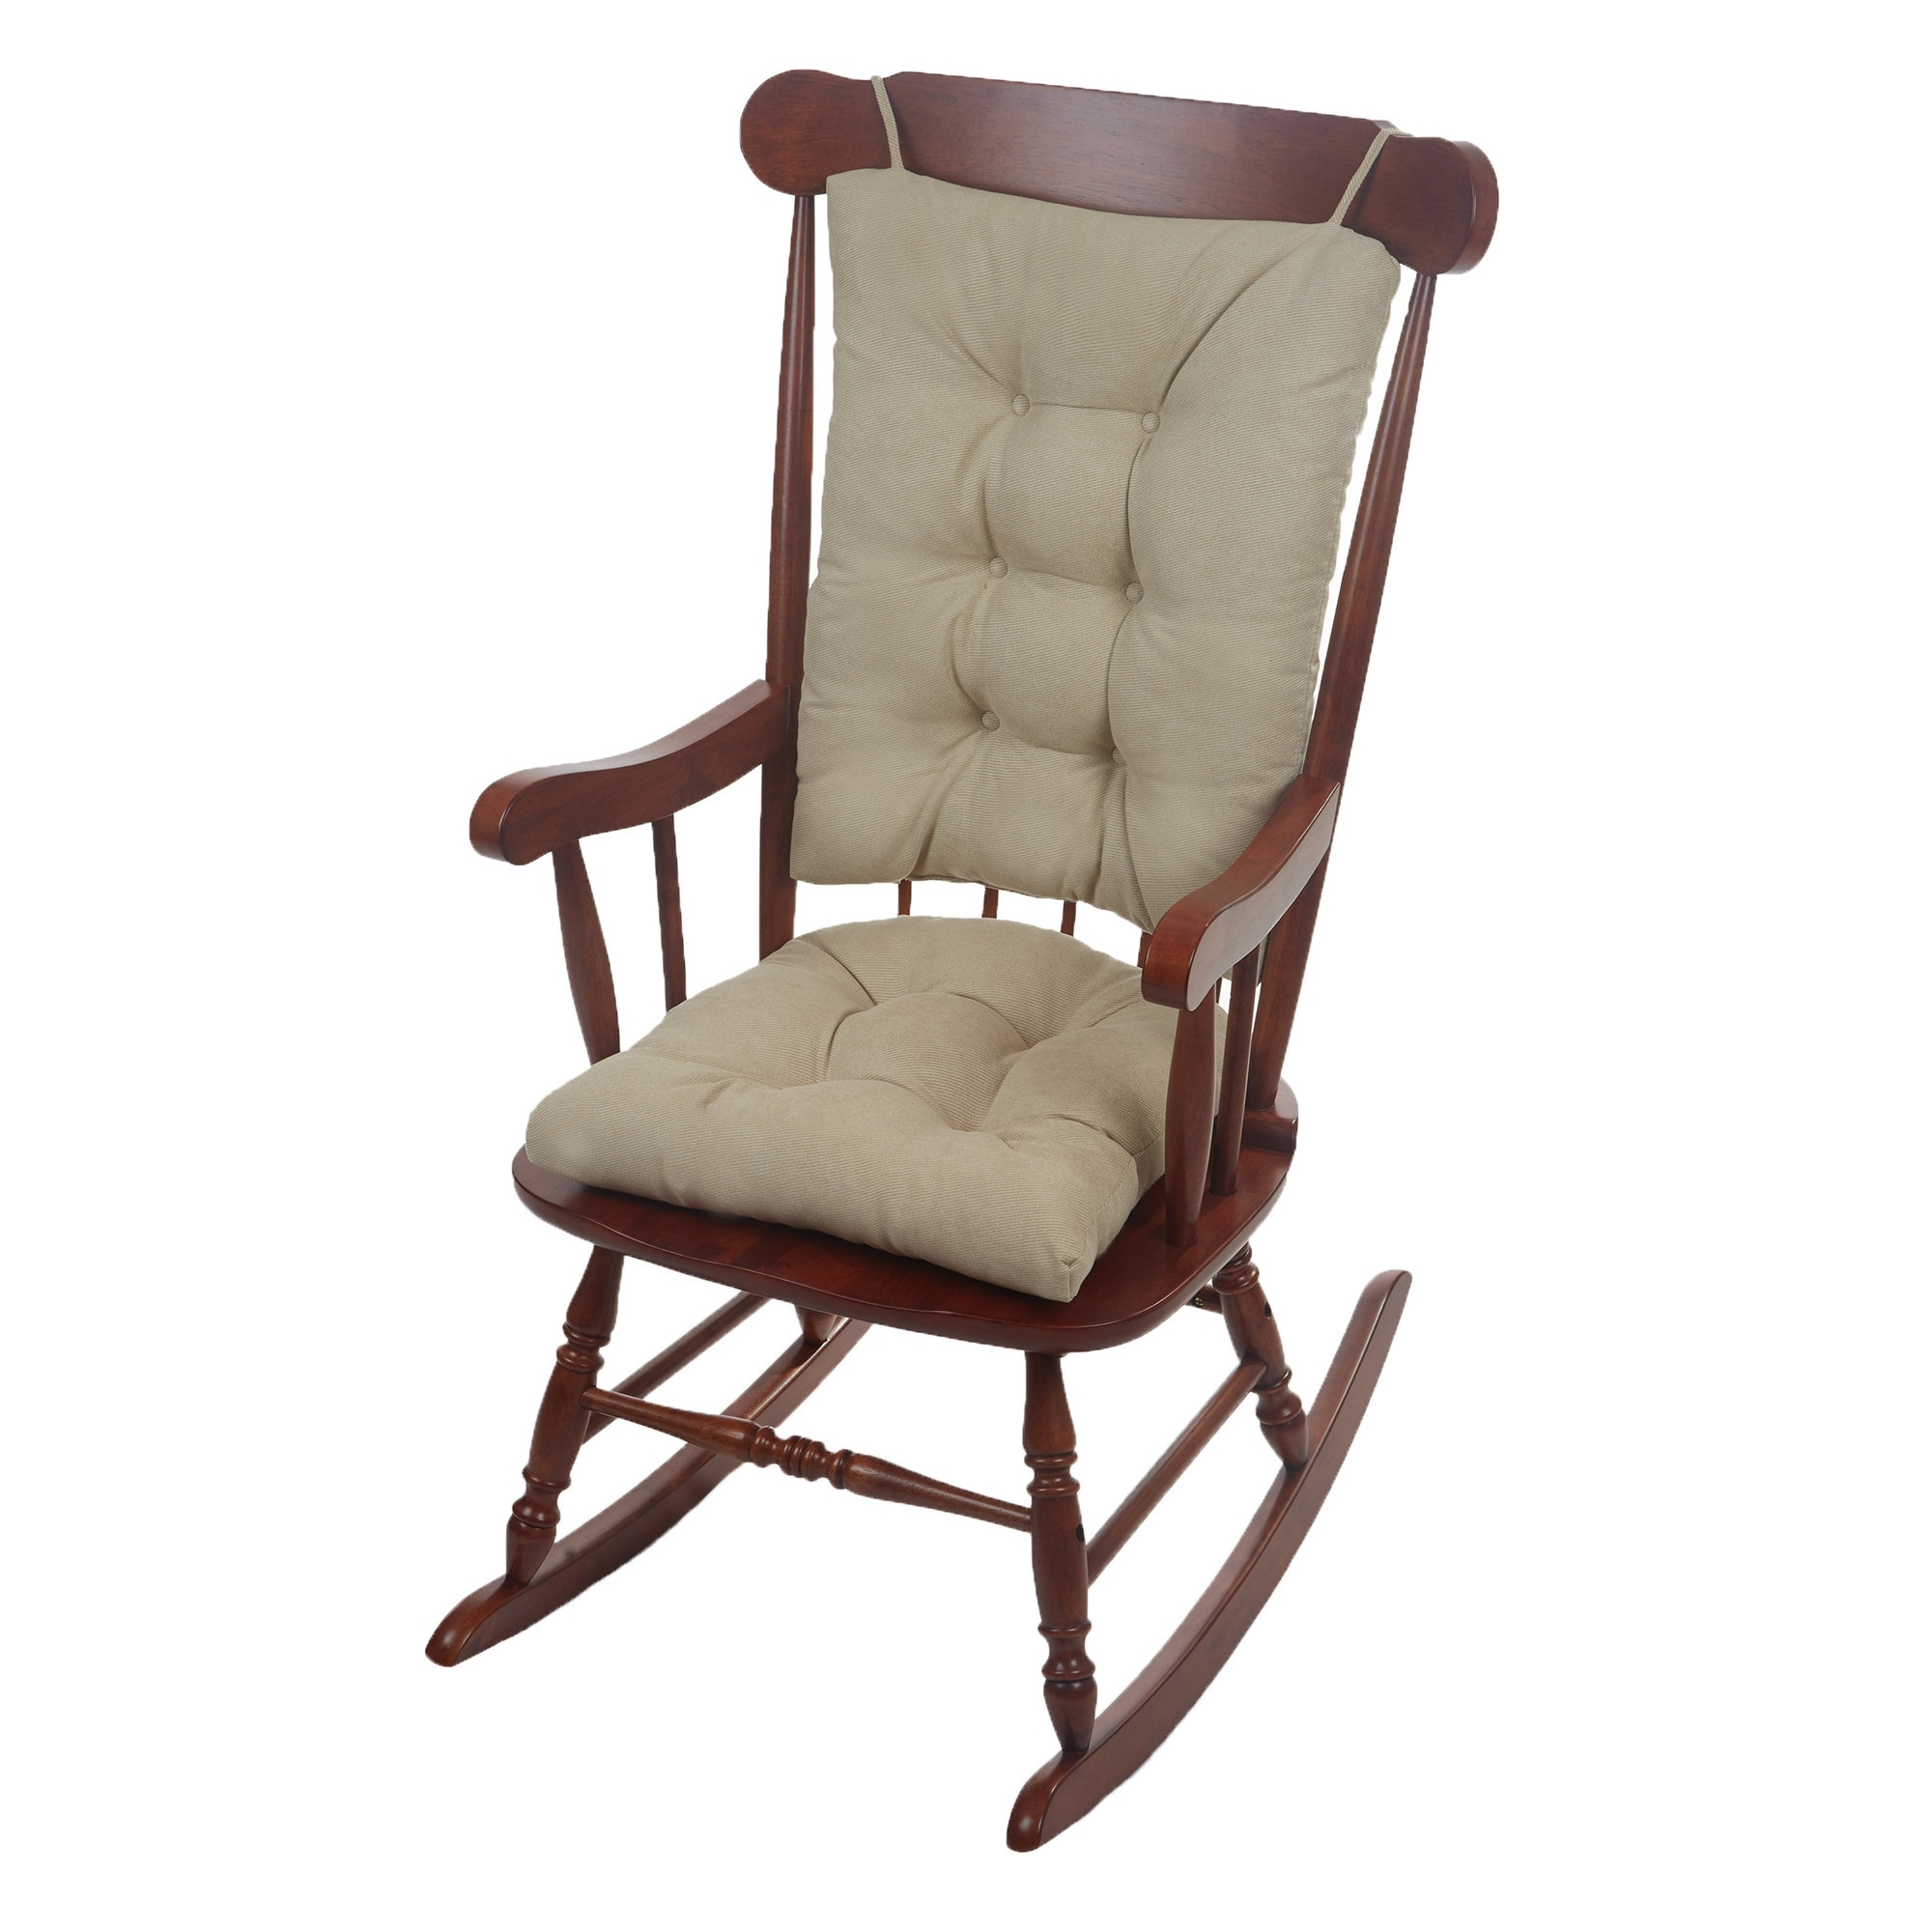 Most Recent Rocking Chairs At Wayfair Throughout Wayfair Basics™ Wayfair Basics Rocking Chair Cushion & Reviews (View 2 of 15)